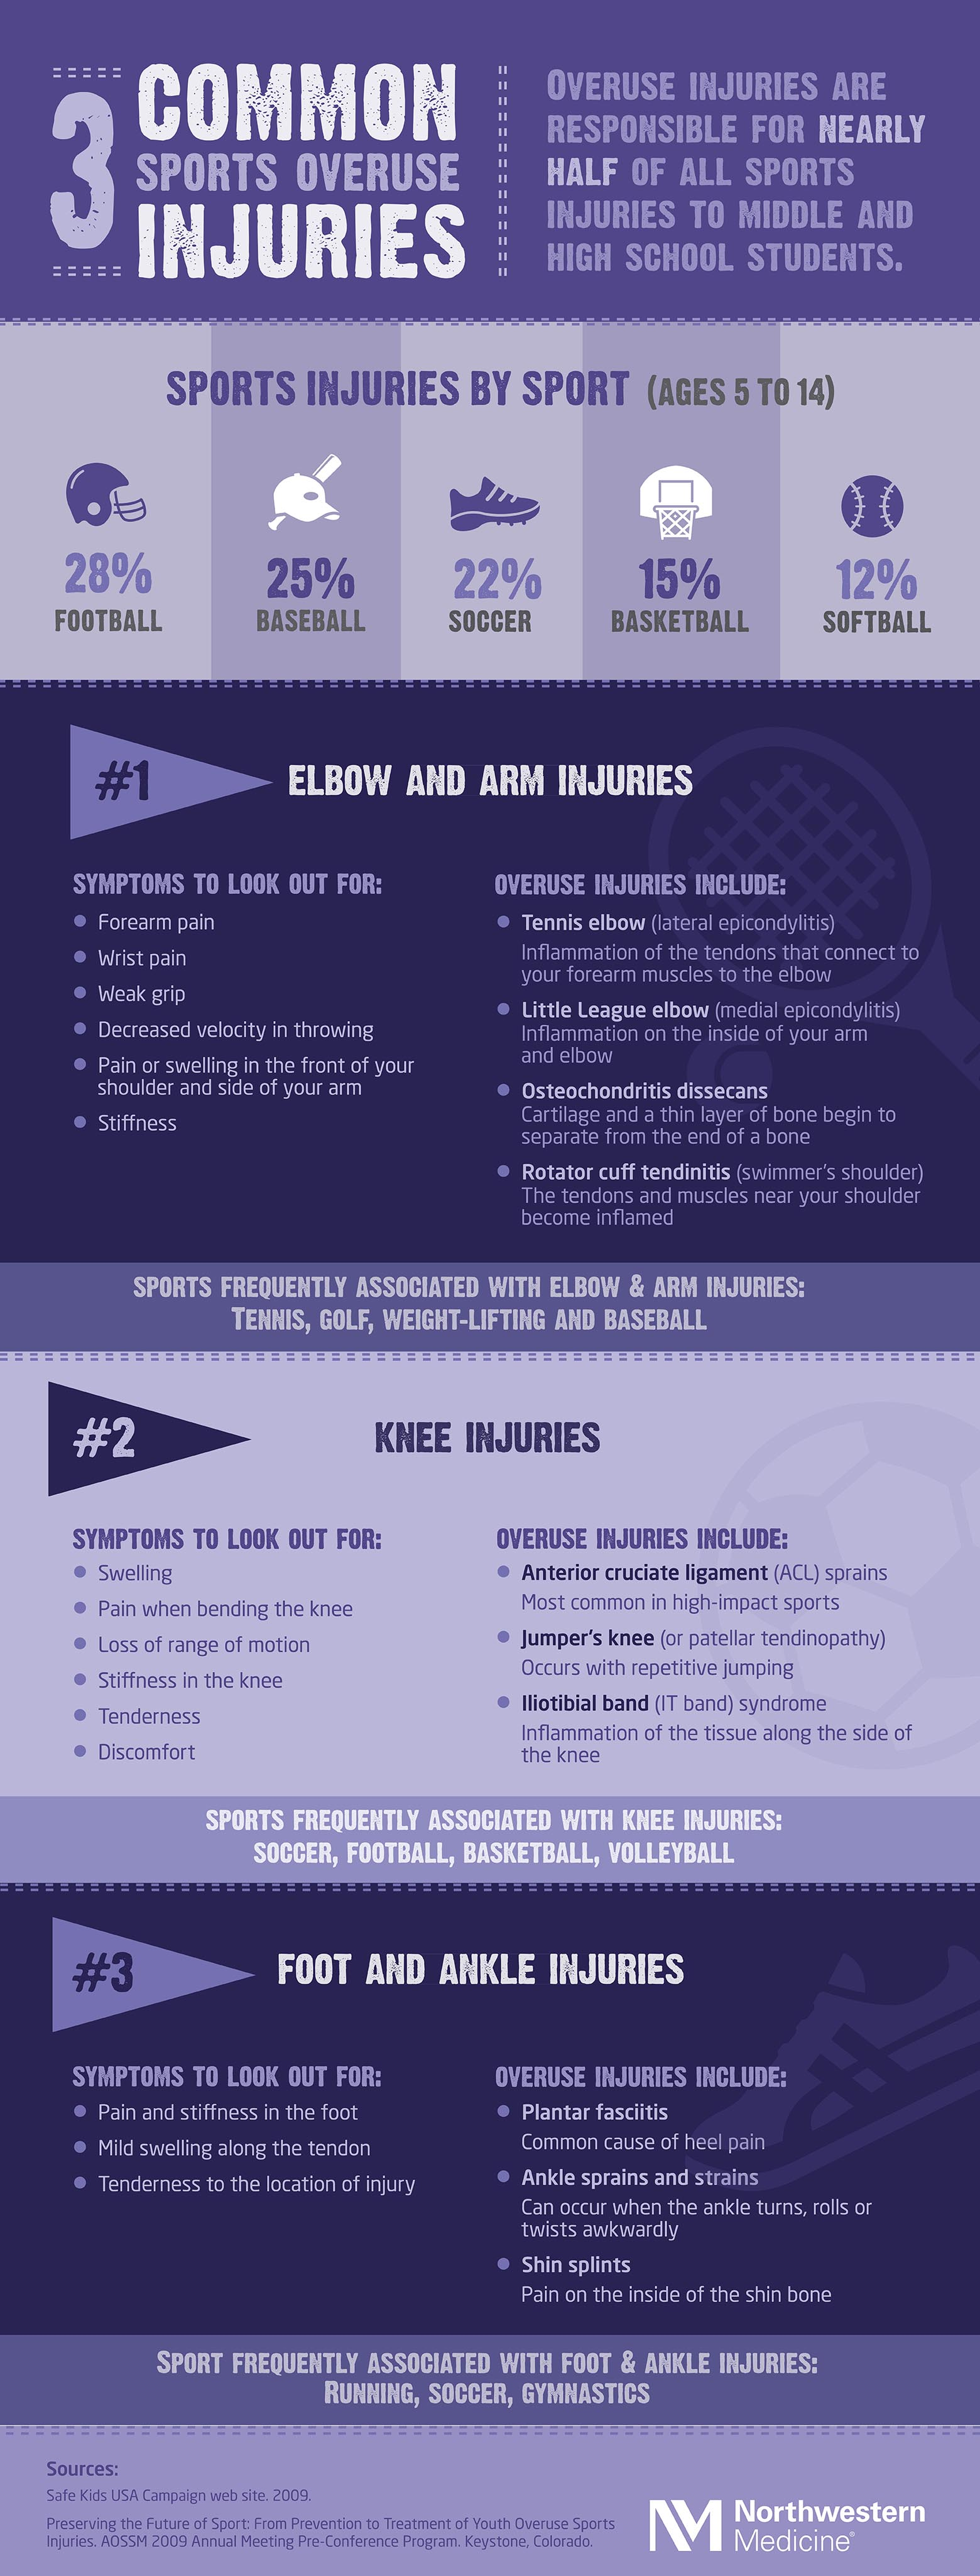 common-sports-injuries-infographic